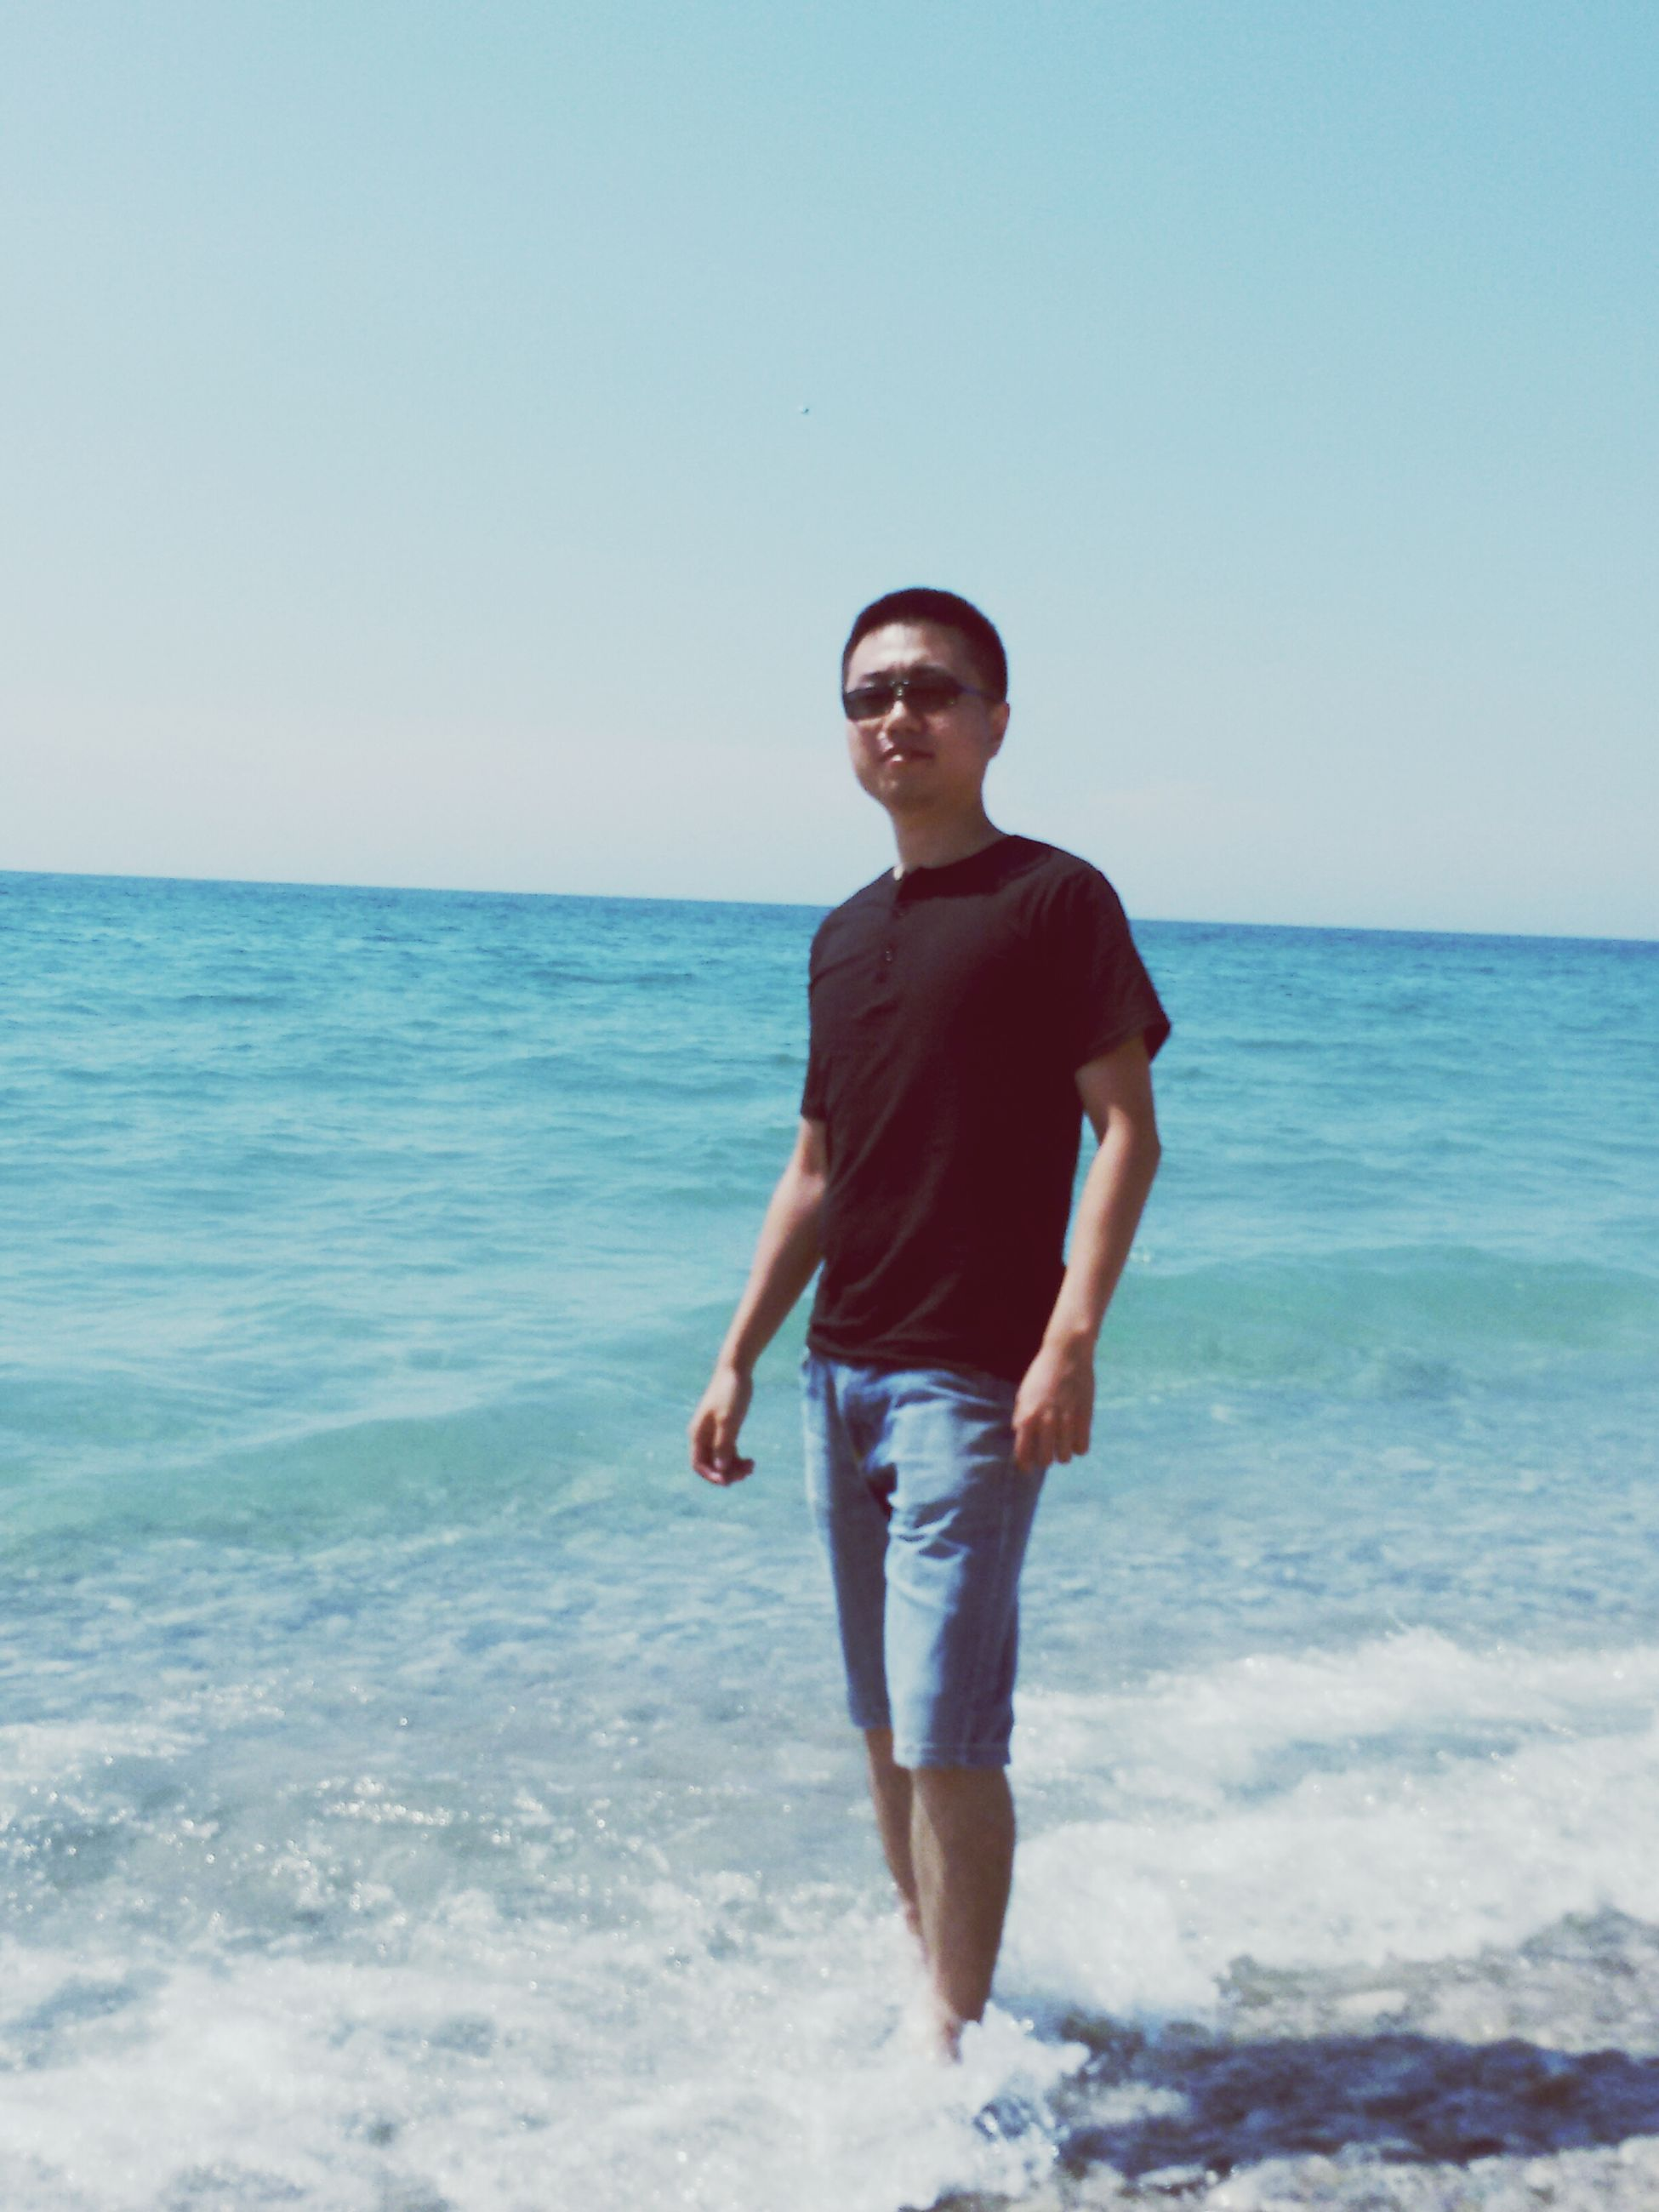 sea, water, portrait, looking at camera, horizon over water, copy space, young adult, person, clear sky, front view, lifestyles, beach, casual clothing, leisure activity, standing, young men, shore, smiling